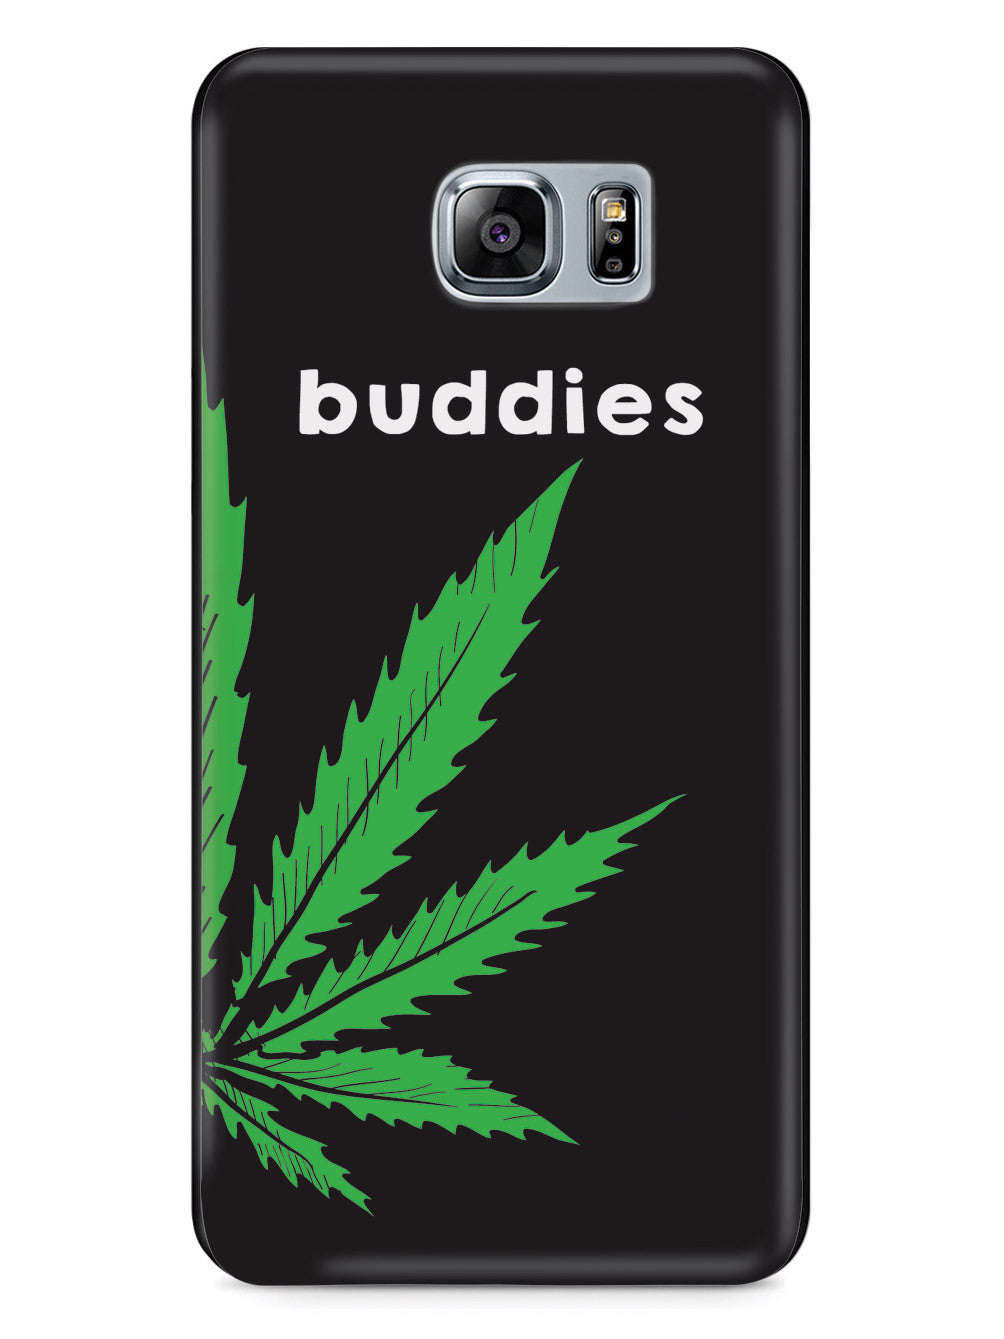 Smoking BUDDIES - BUDDIES Case